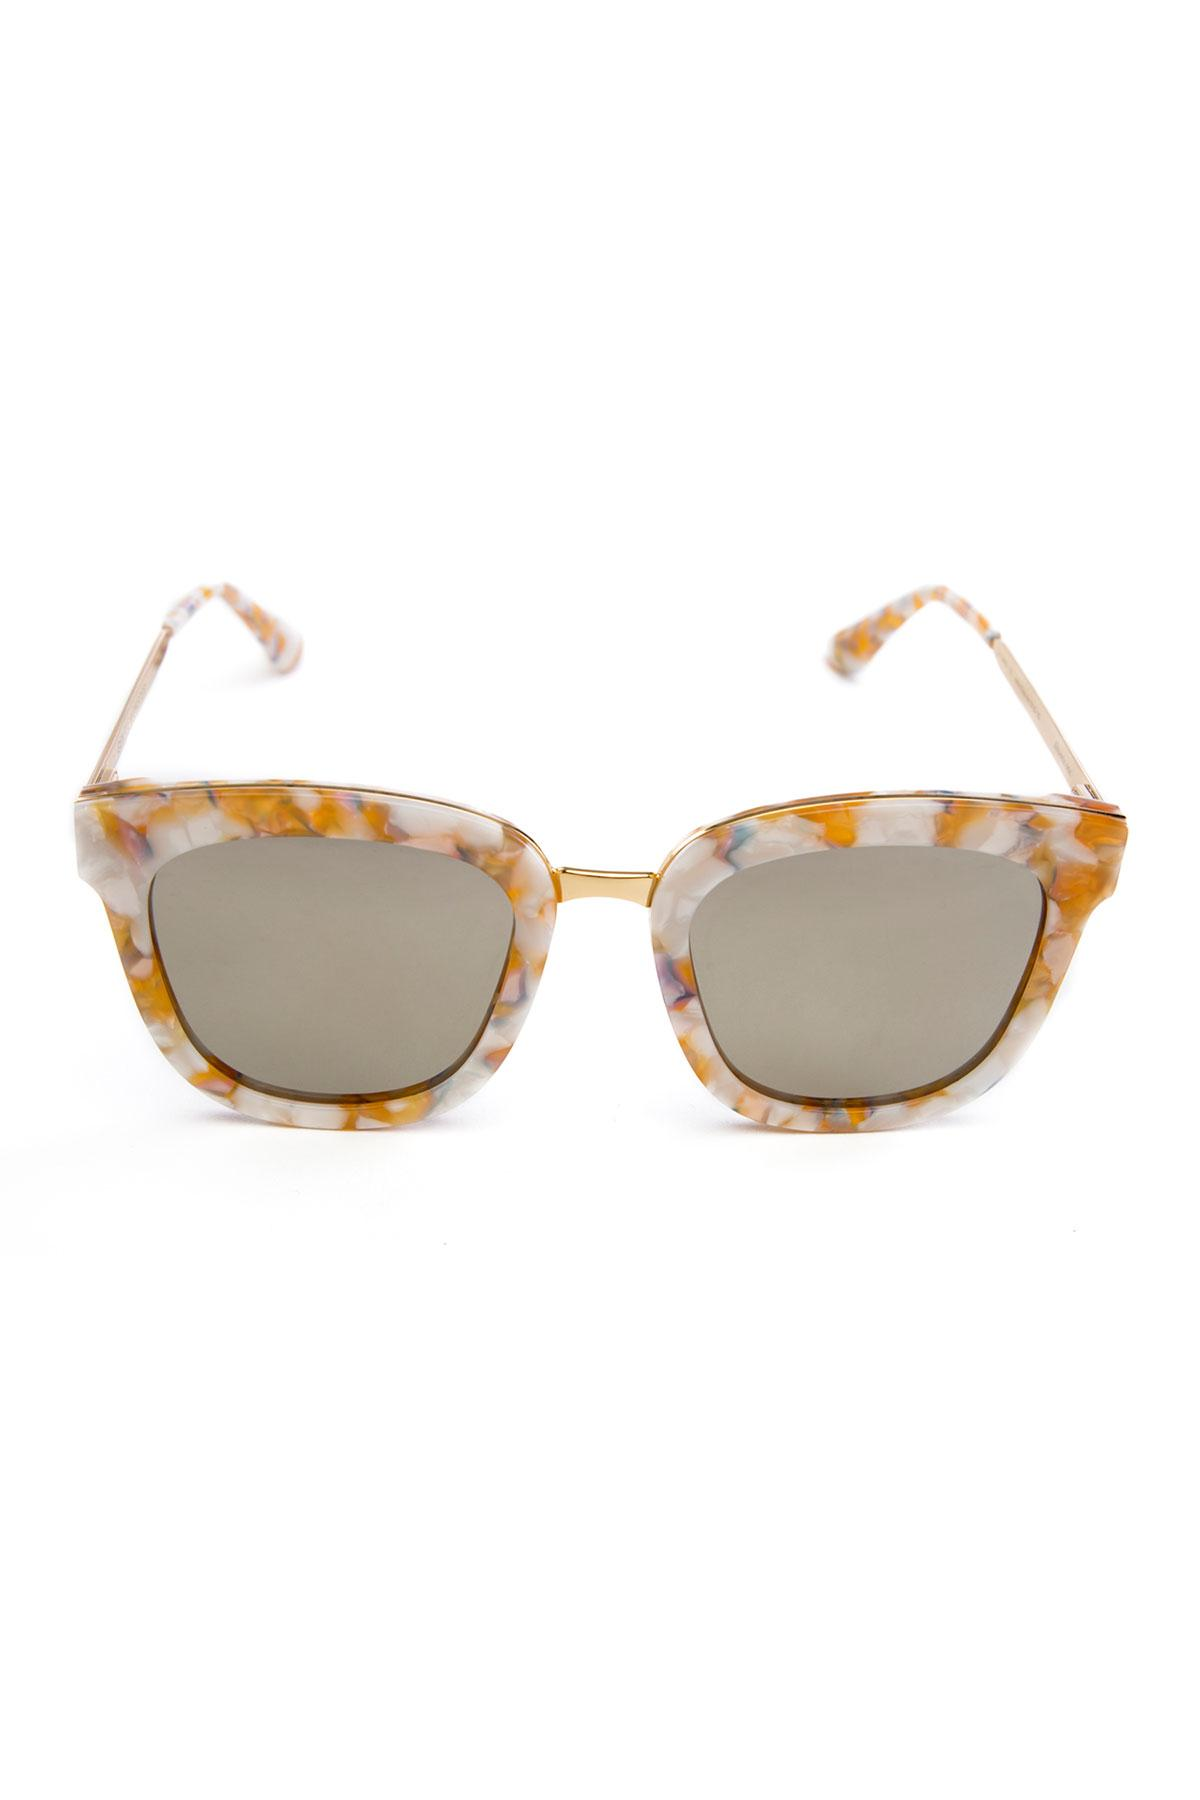 b70202ce72a6 White and Yellow pearly finish Square Frame by Gentle Monster for ...